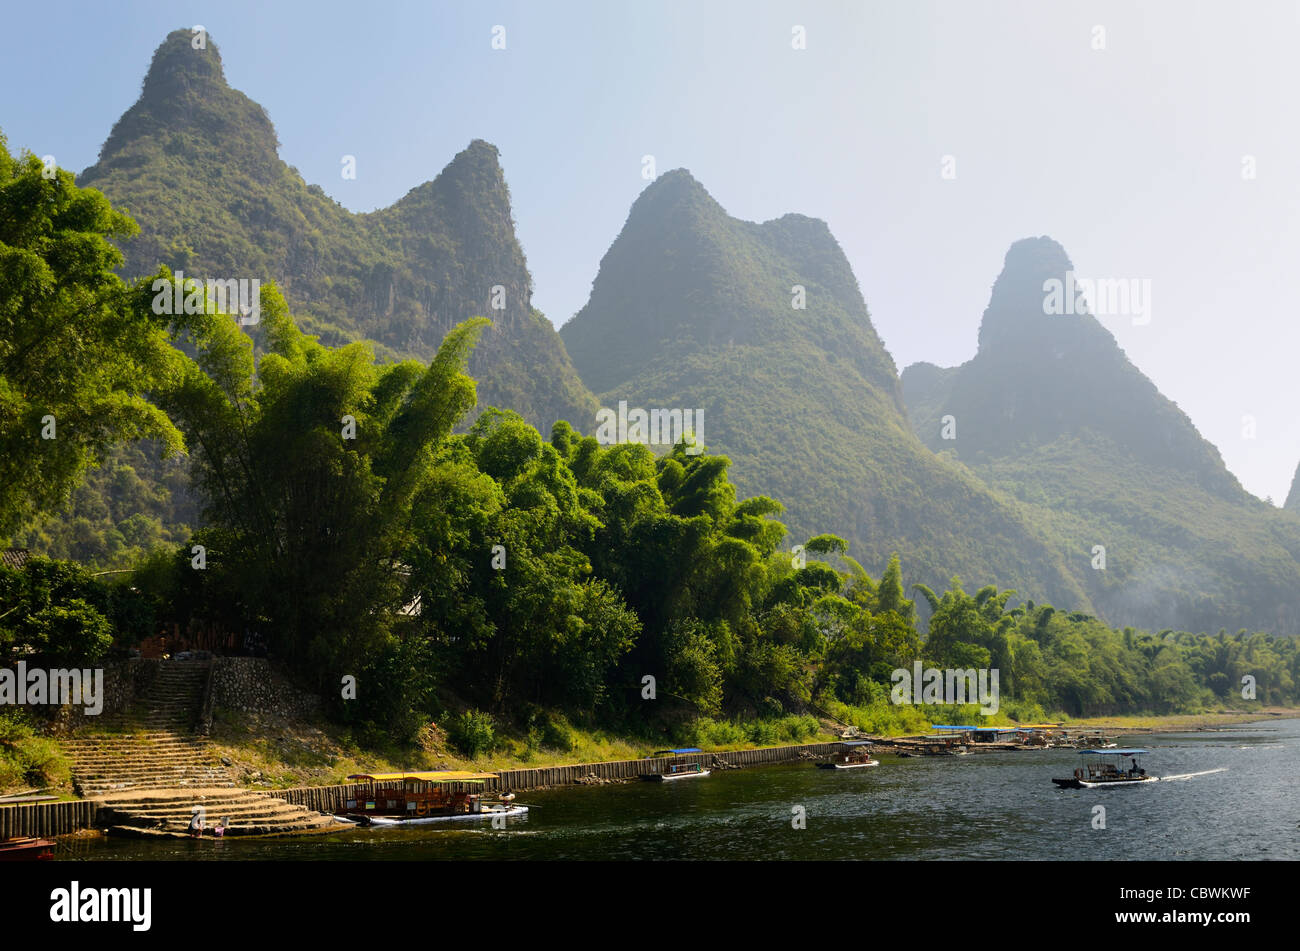 Steps to the Li river Guangxi Peoples Republic of China with fingerlike karst mountain peaks and bamboo forest Stock Photo